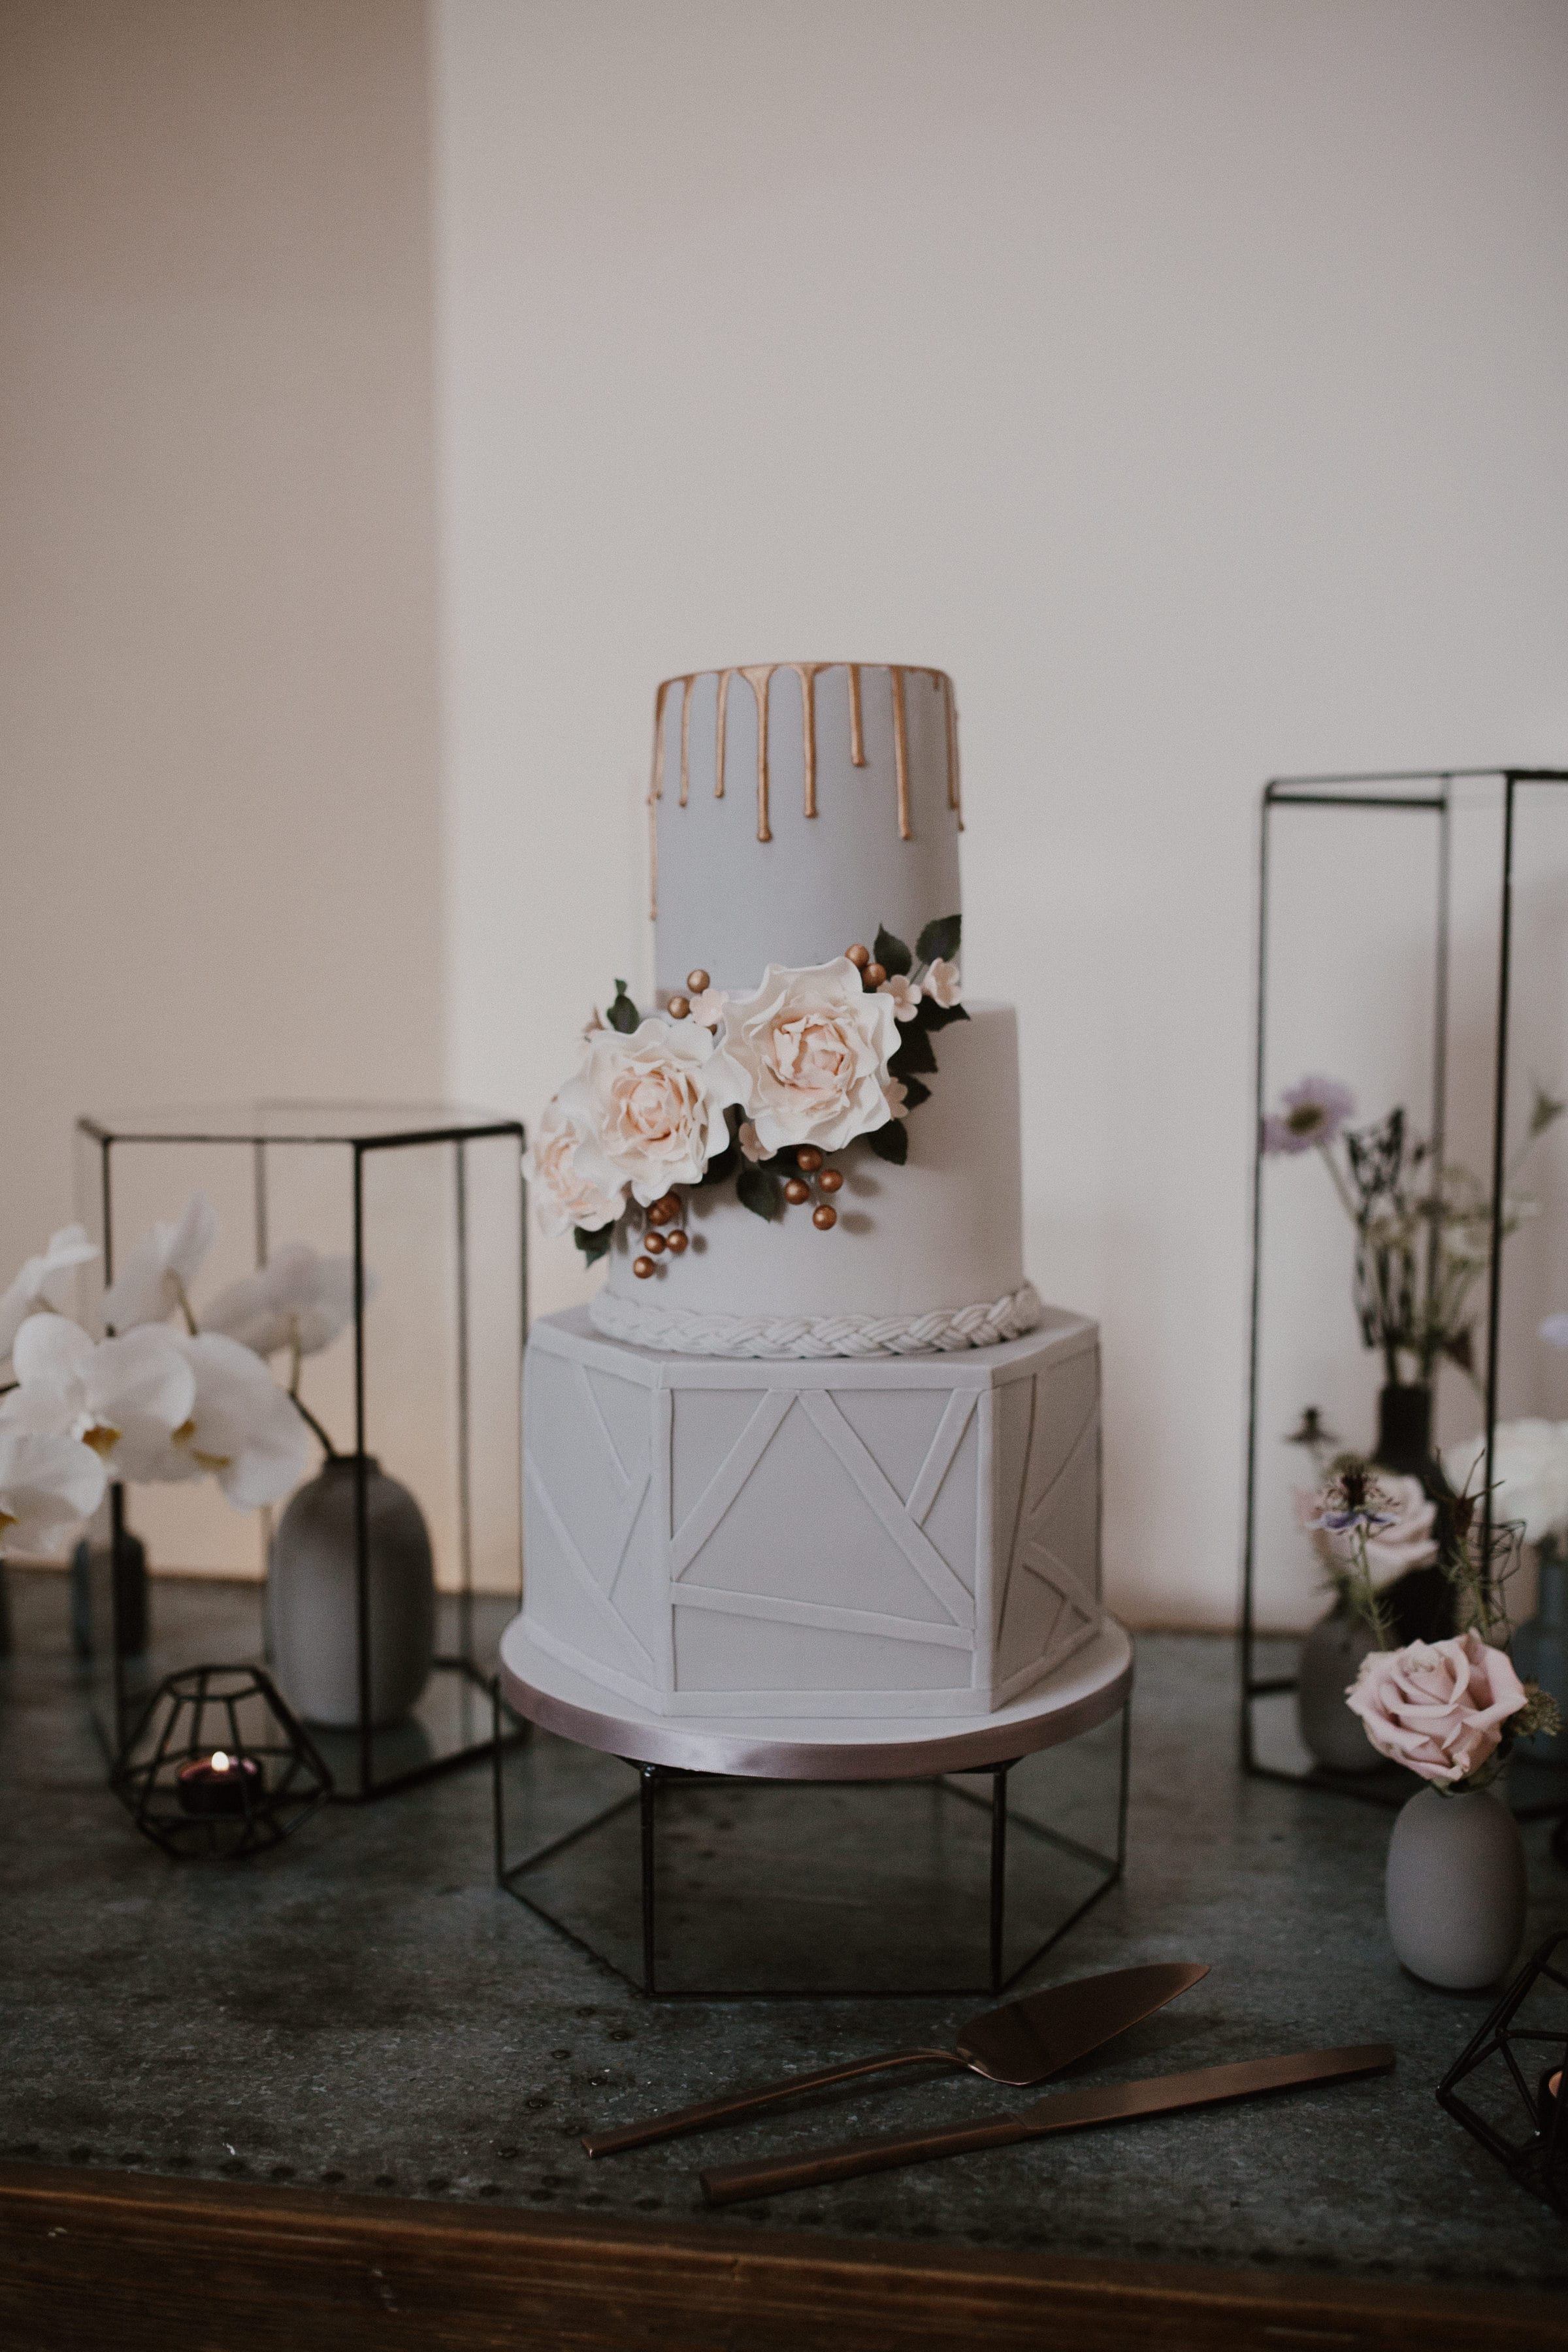 Nat and Tom - 01 - Venue and Details - Sara Lincoln Photography-90-min.jpg